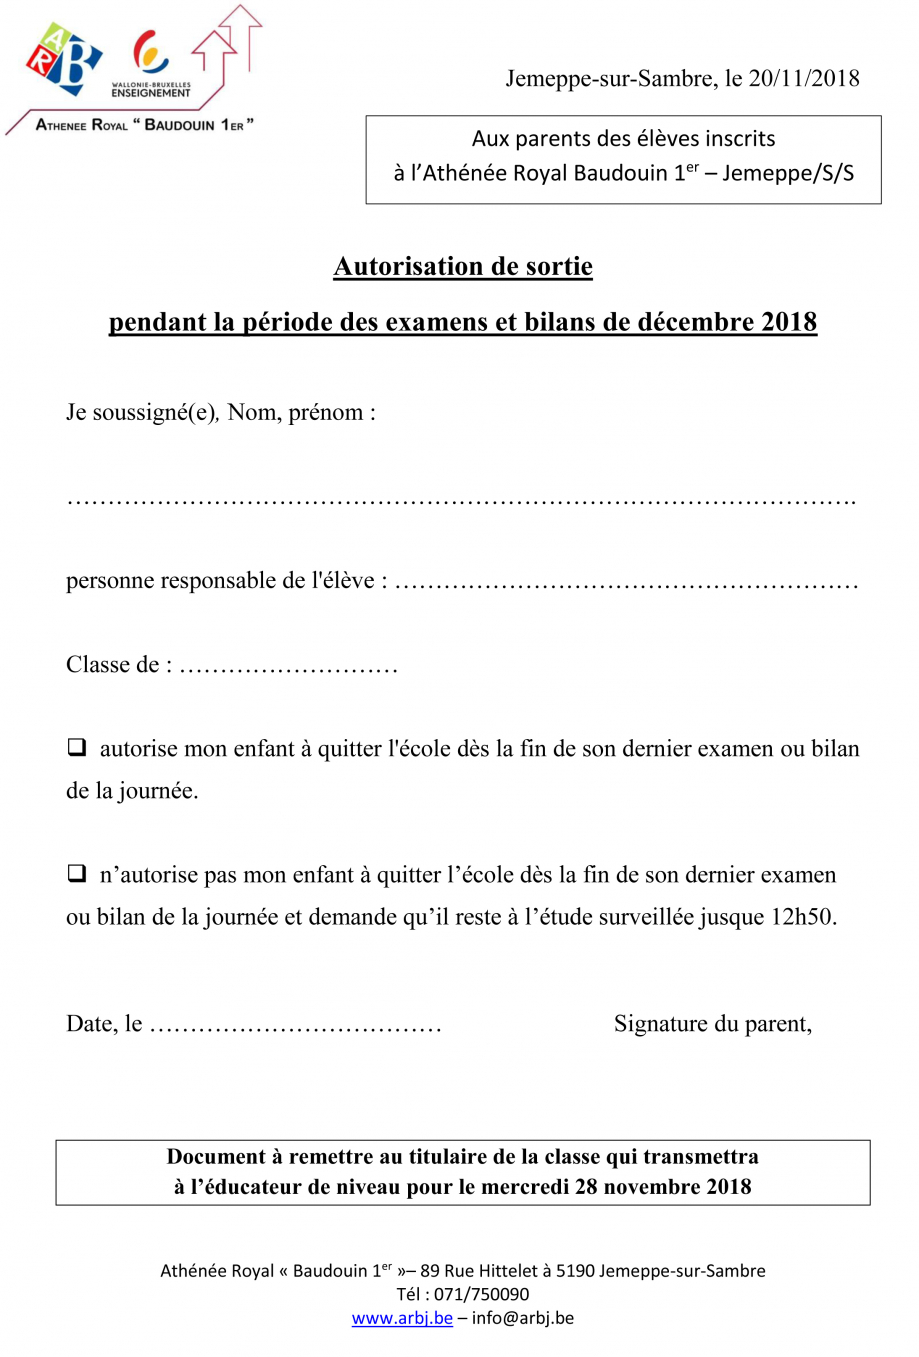 OUT-181119-Parents-Autorisation de sortie pdt examens-2.jpg